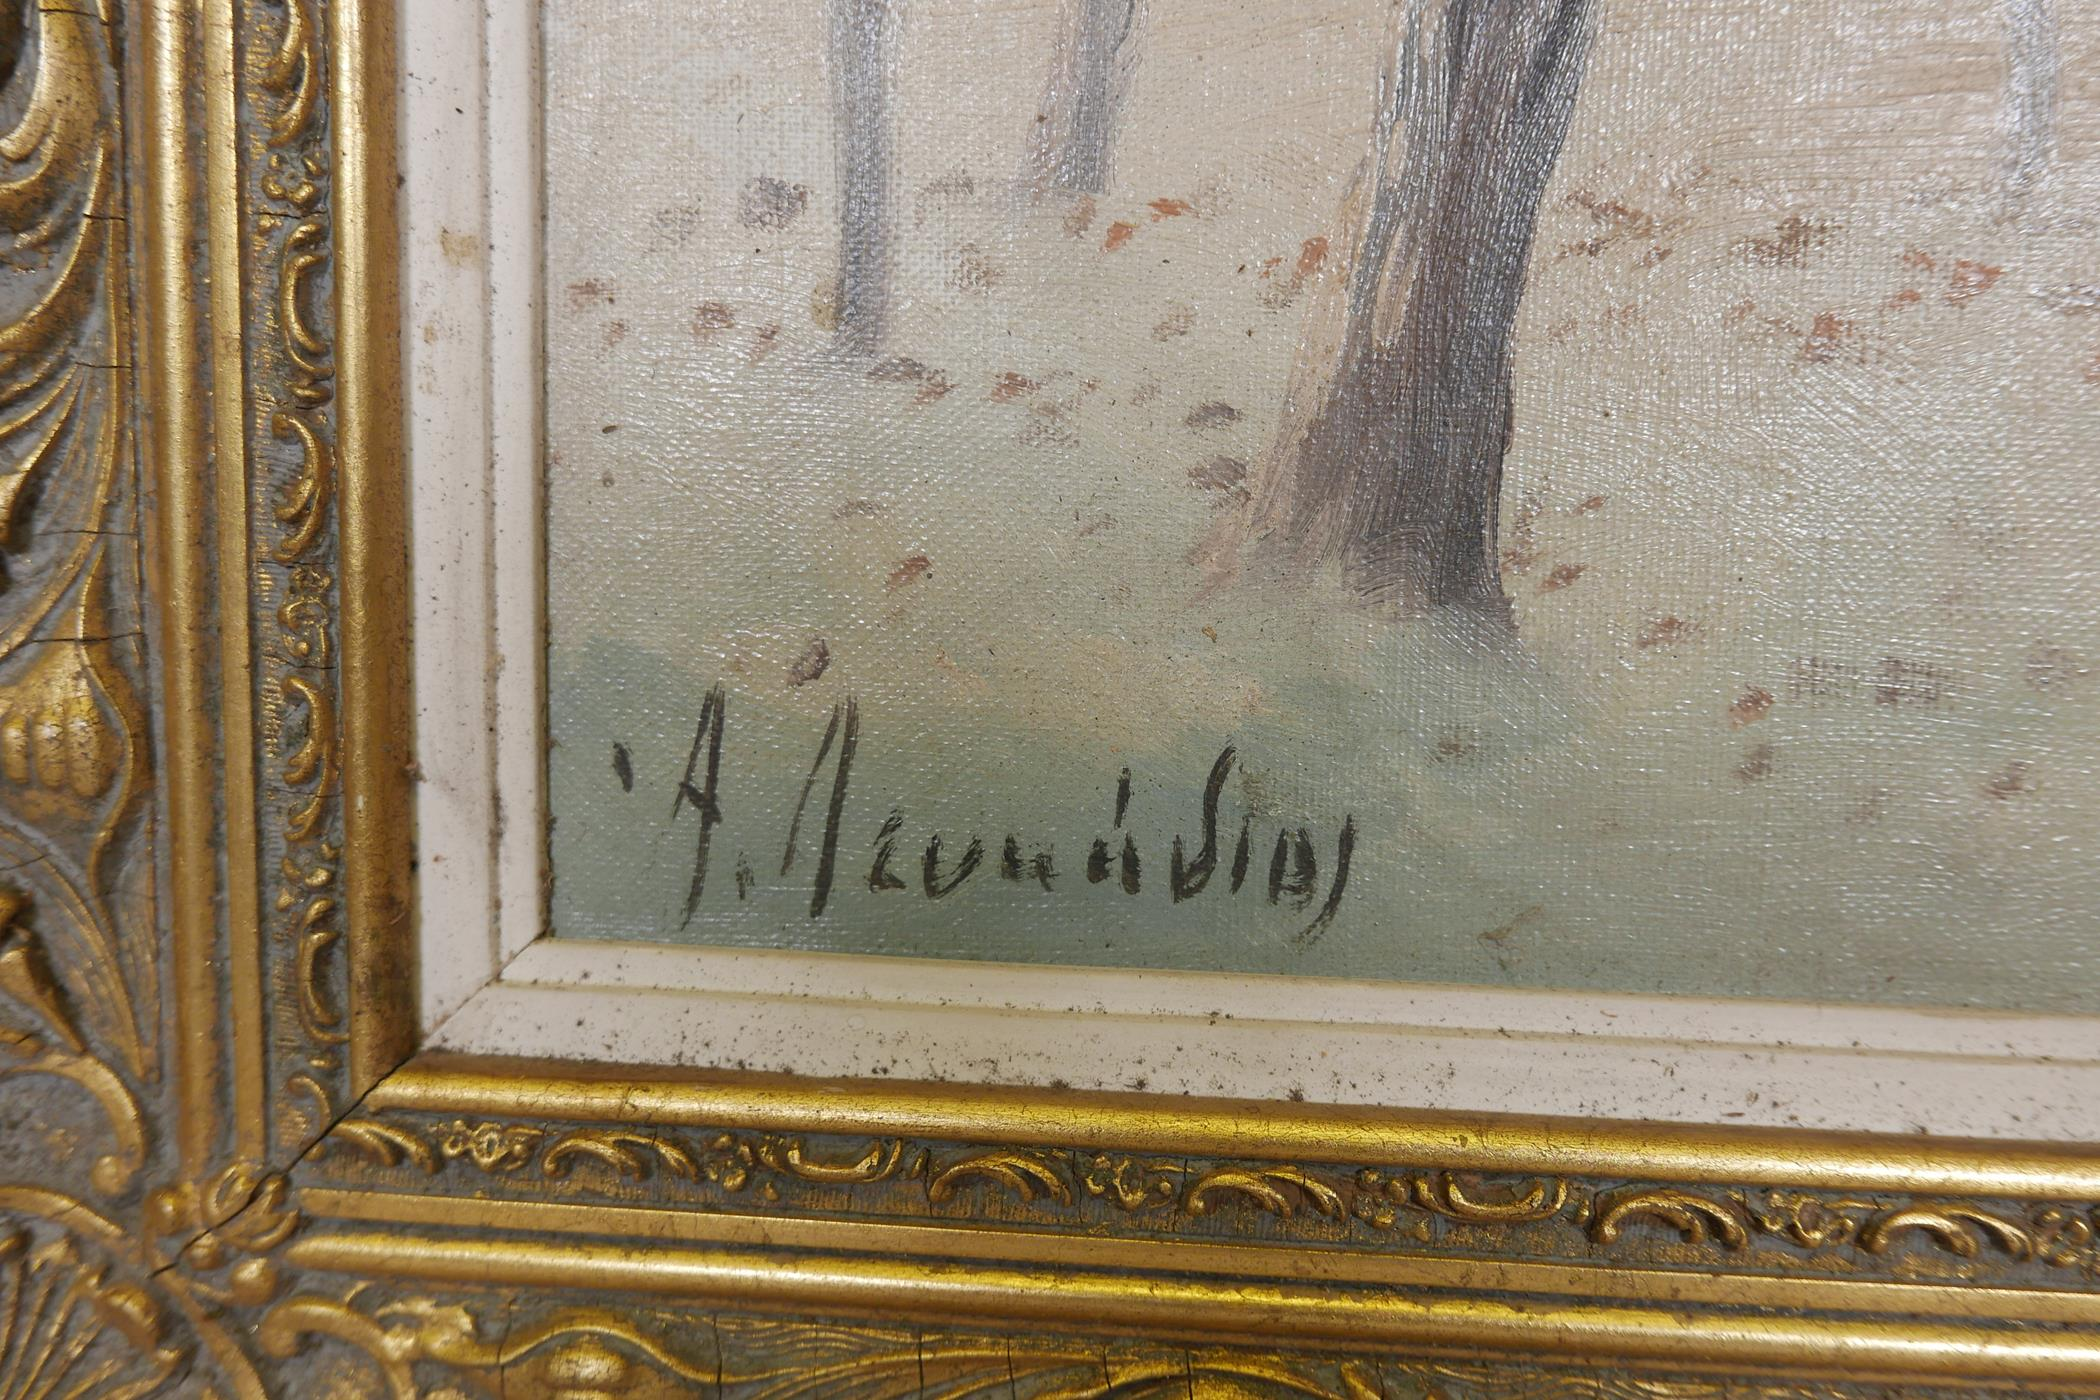 """Winter landscape, oil on board, signed A. Leukedios ?, Greek, early C20th, 18"""" x 11"""" - Image 3 of 5"""